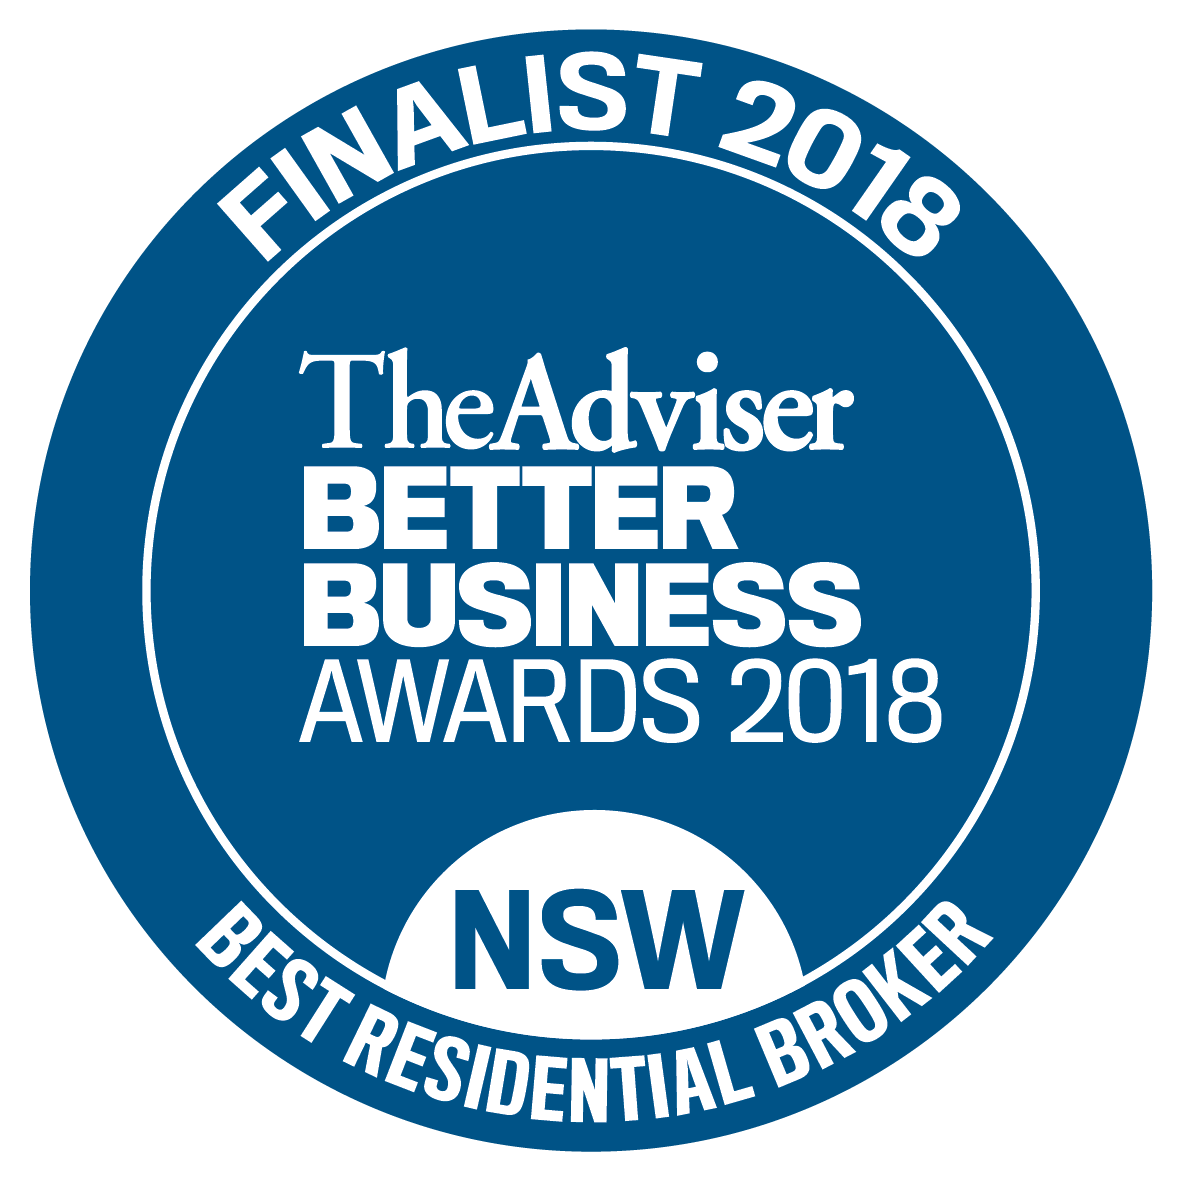 BBS_Finalists__Best Residential Broker.png